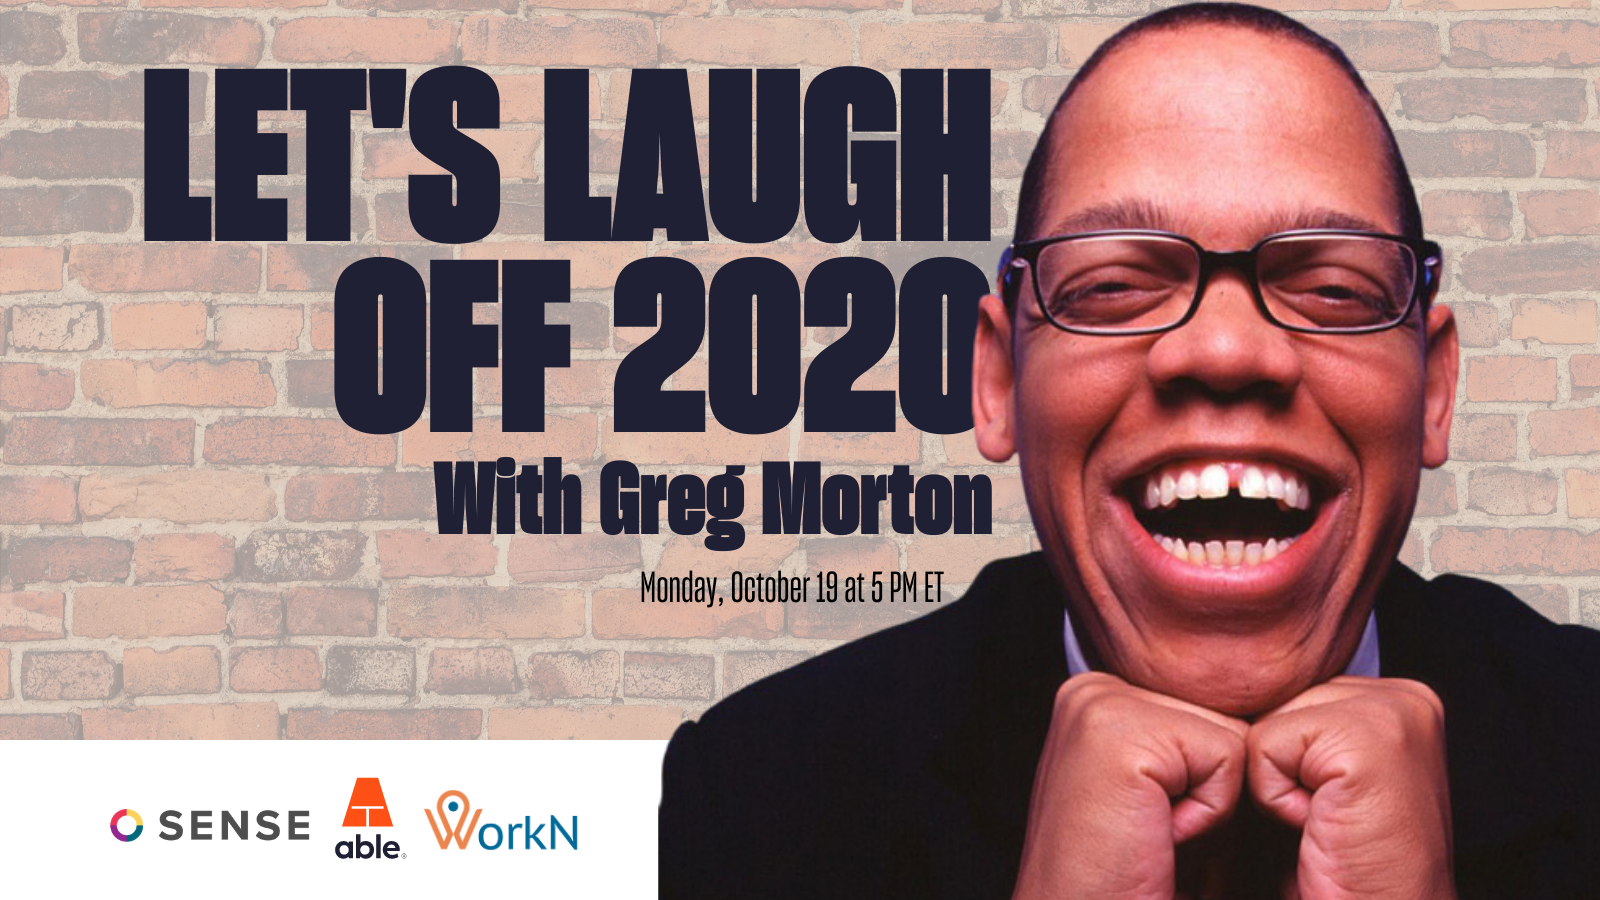 Join Able, Sense, and WorkN for Let's Laugh Off 2020 with Greg Morton, a virtual comedy show for the entire family.